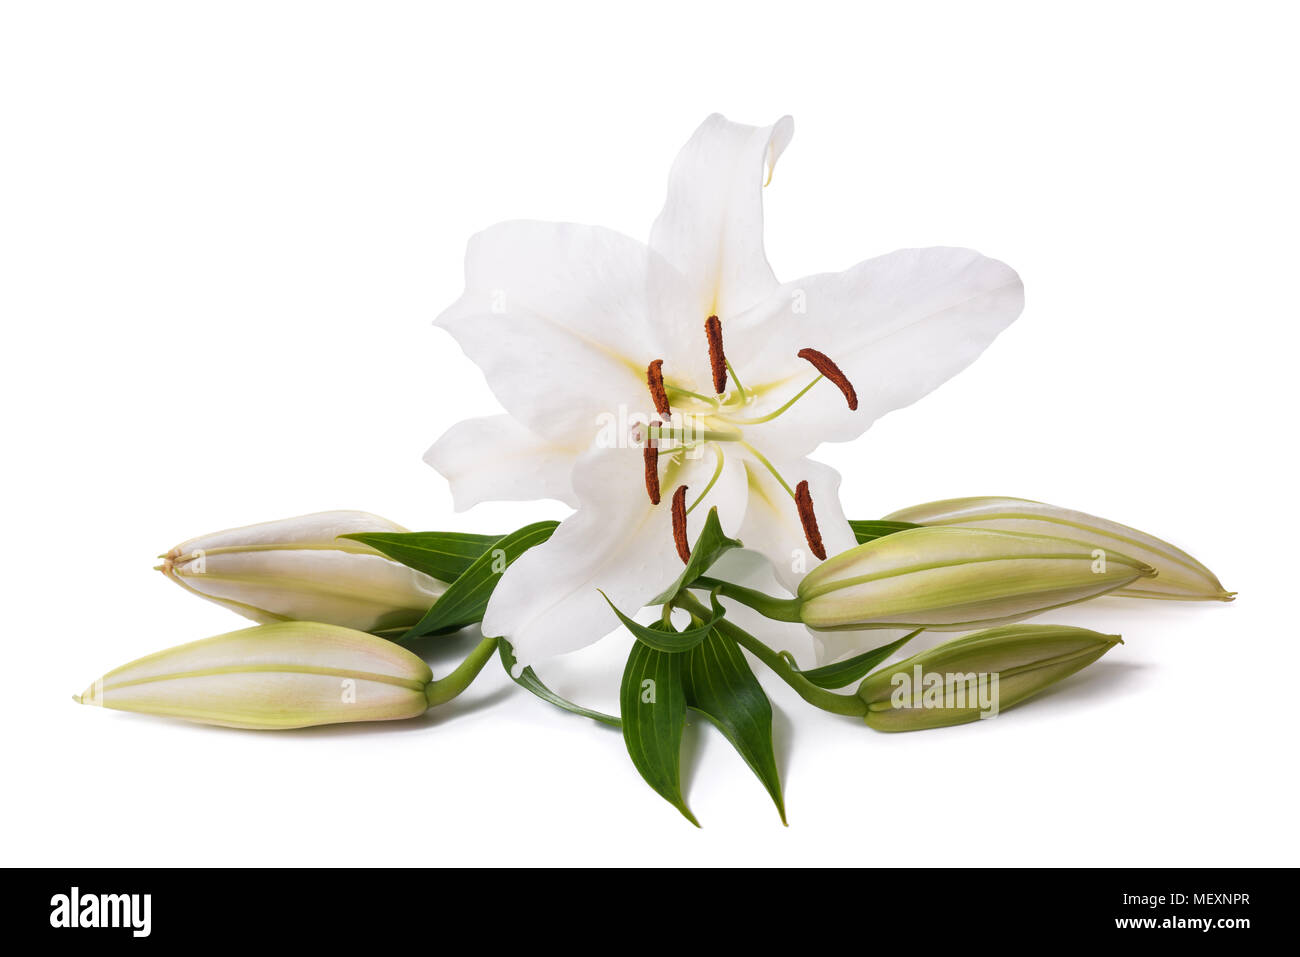 Madonna lily flower stock photos madonna lily flower stock images white lily flower isolated on a white background stock image izmirmasajfo Gallery